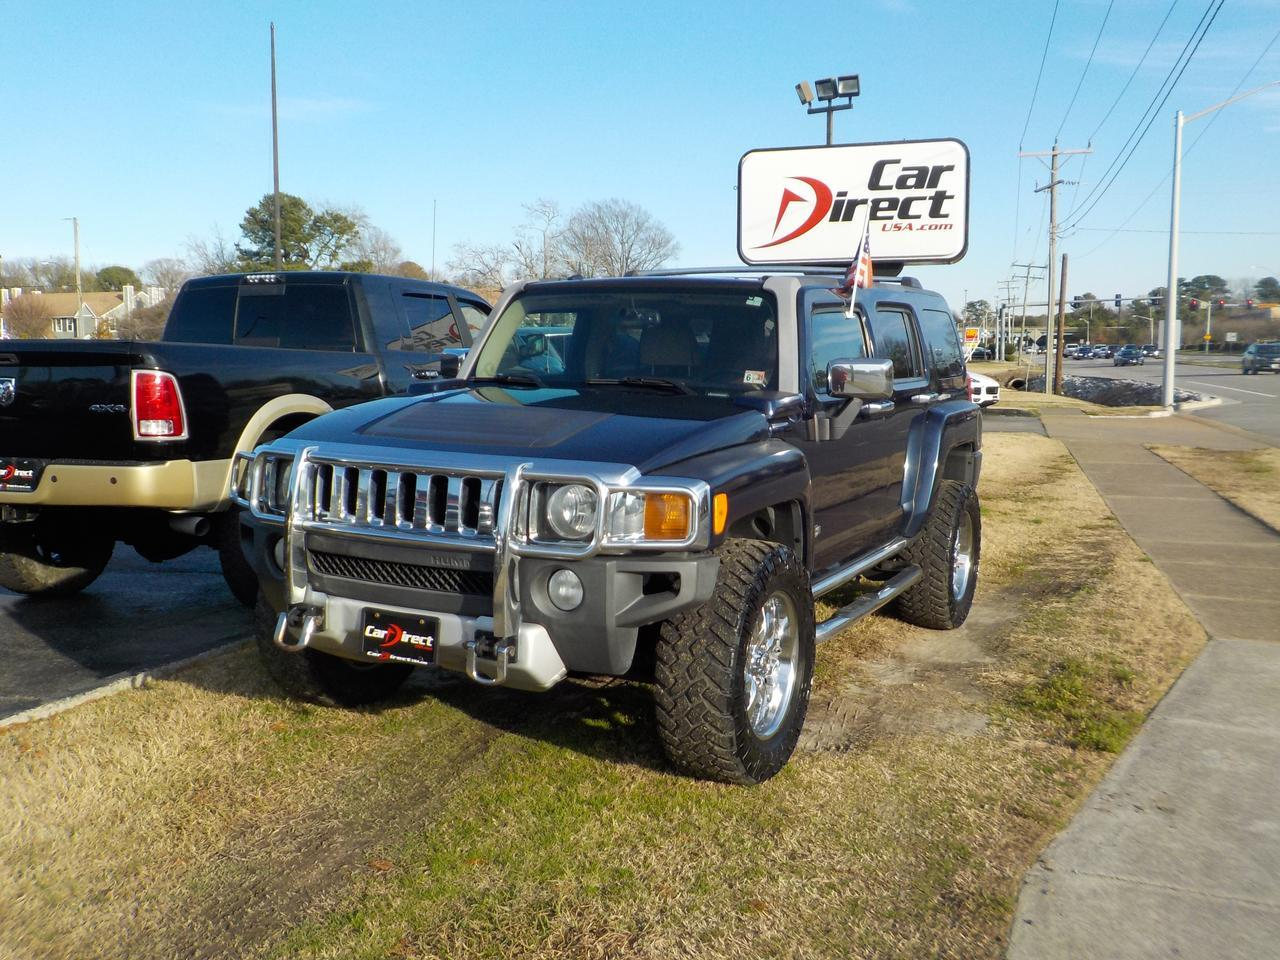 2008 HUMMER H3 4X4, LEATHER, CUSTOM CRUISER ALLOY RIMS, BLUETOOTH WIRELESS, TOW PACKAGE, BACKUP CAMERA, SUNROOF! Virginia Beach VA